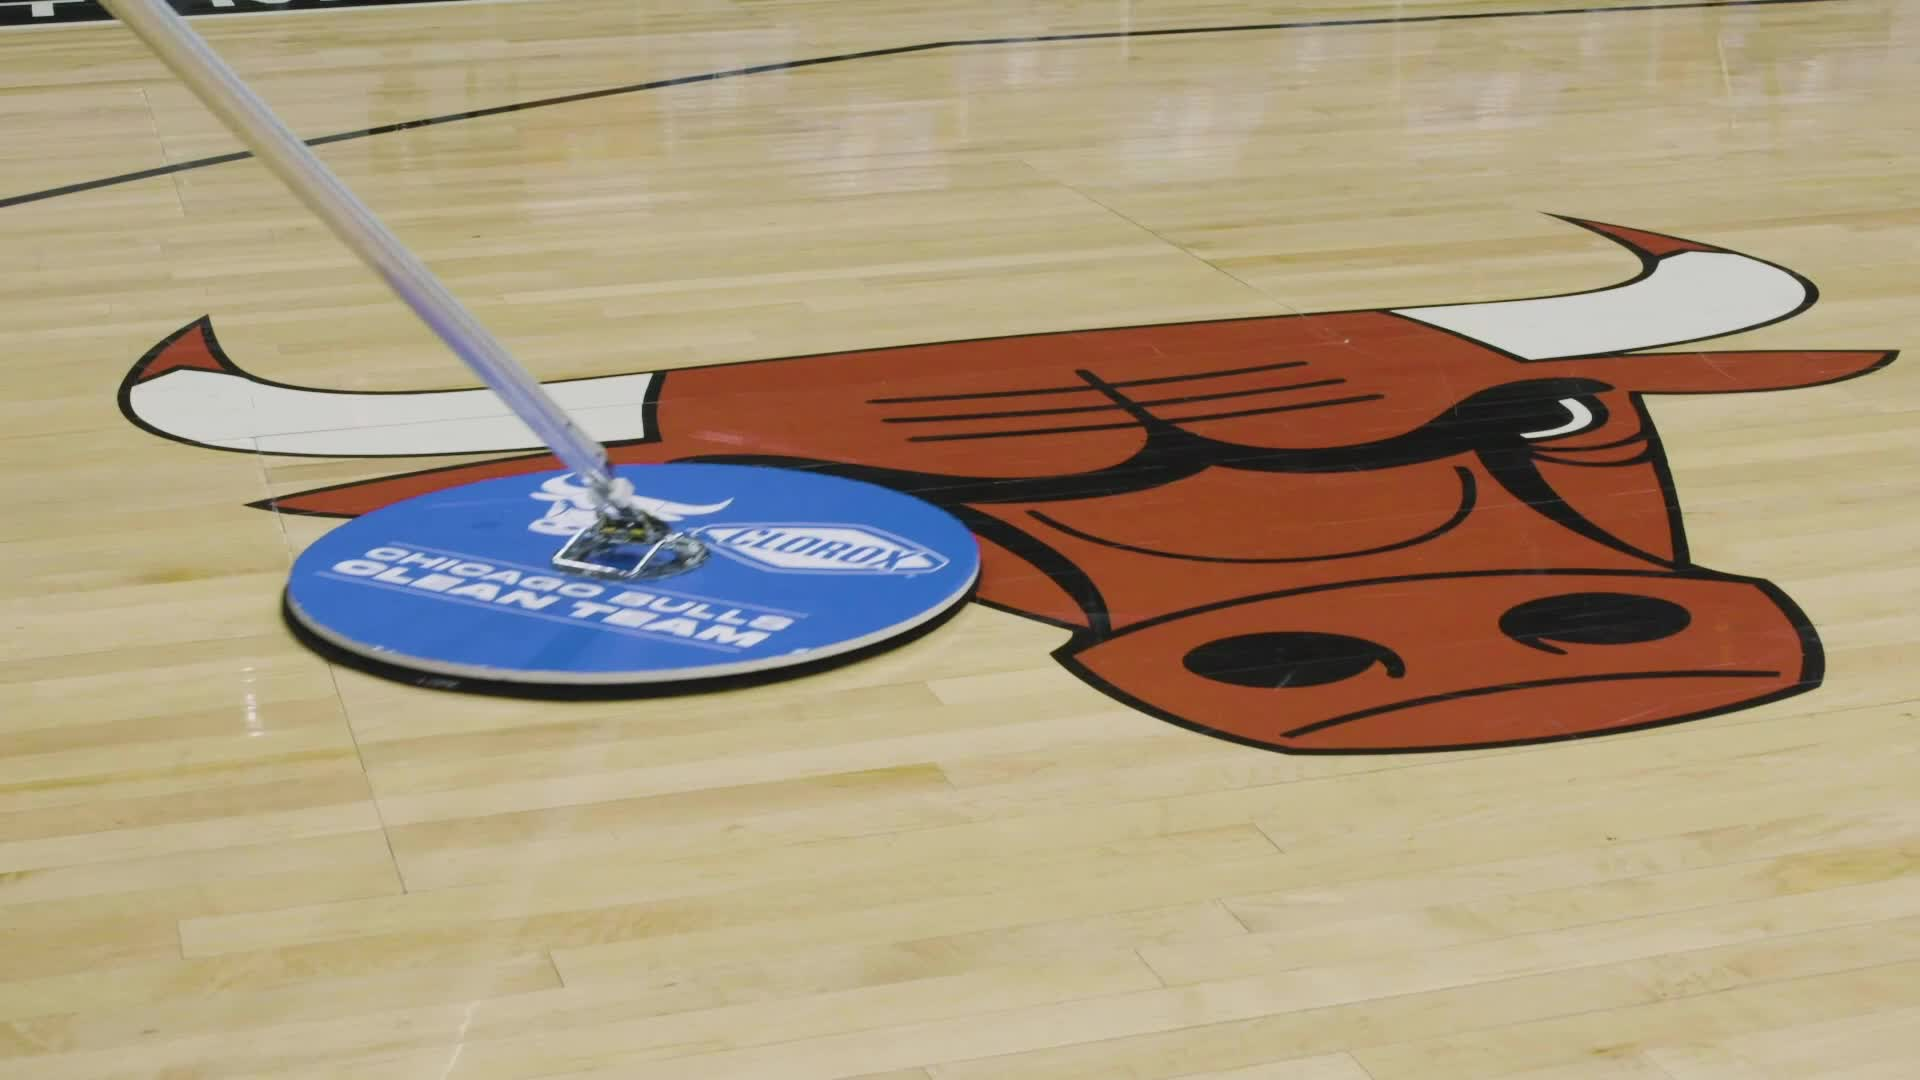 Bulls and Clorox - Teaming up to create a cleaner and safer fan experience